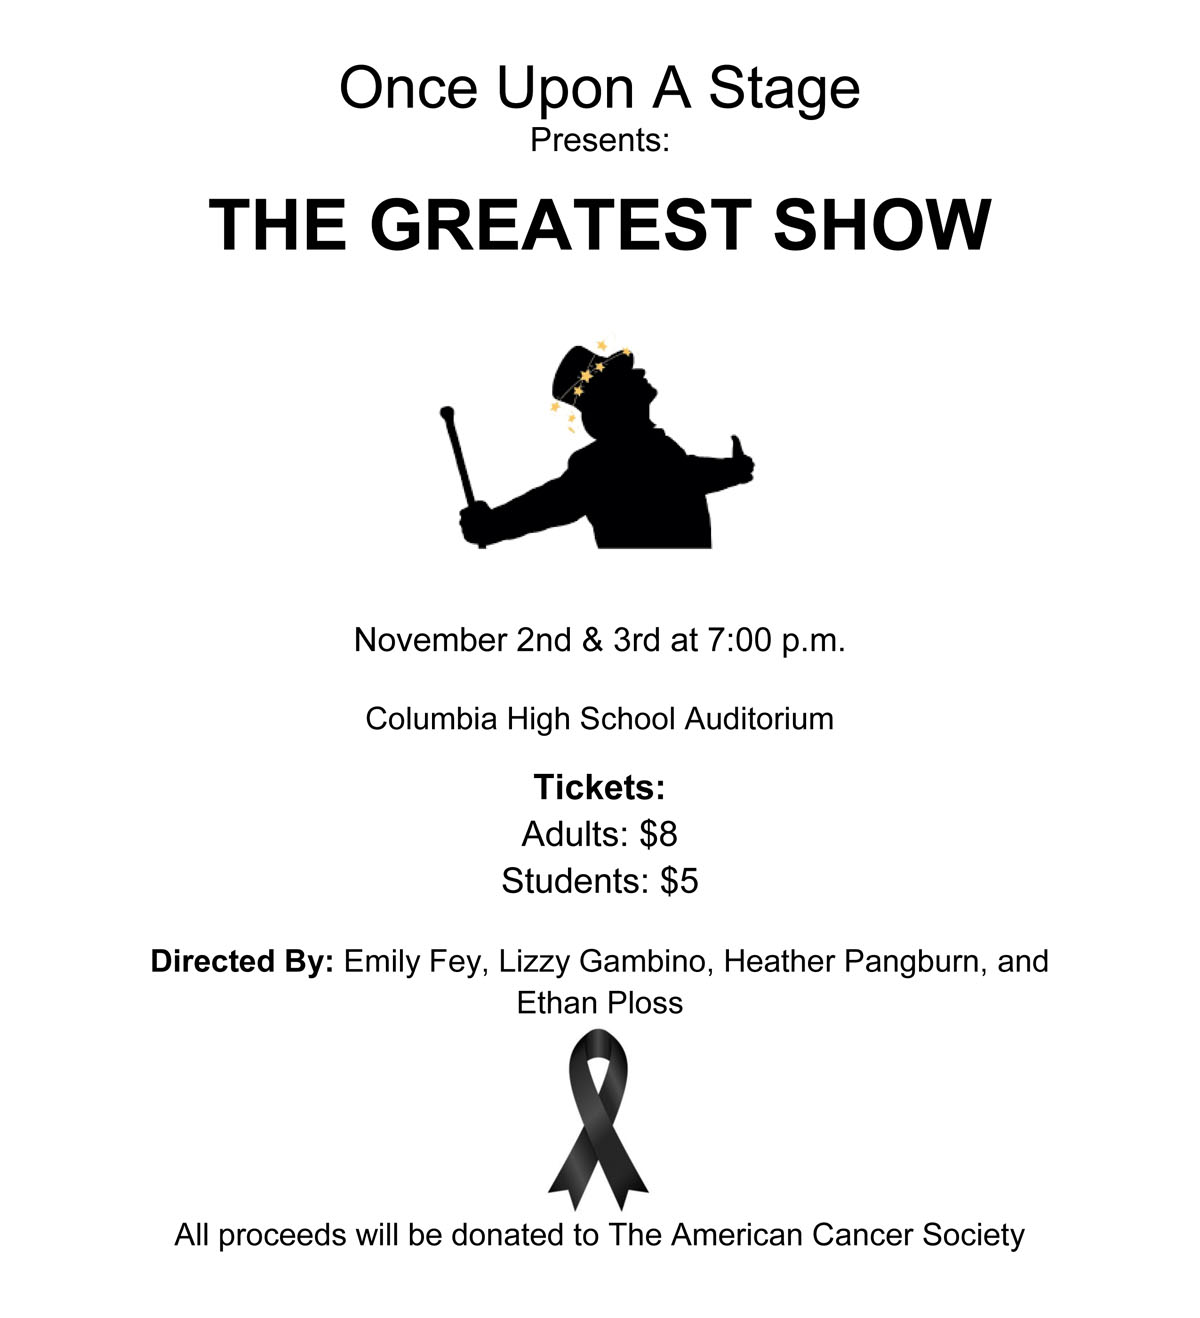 Once Upon a Stage flyer